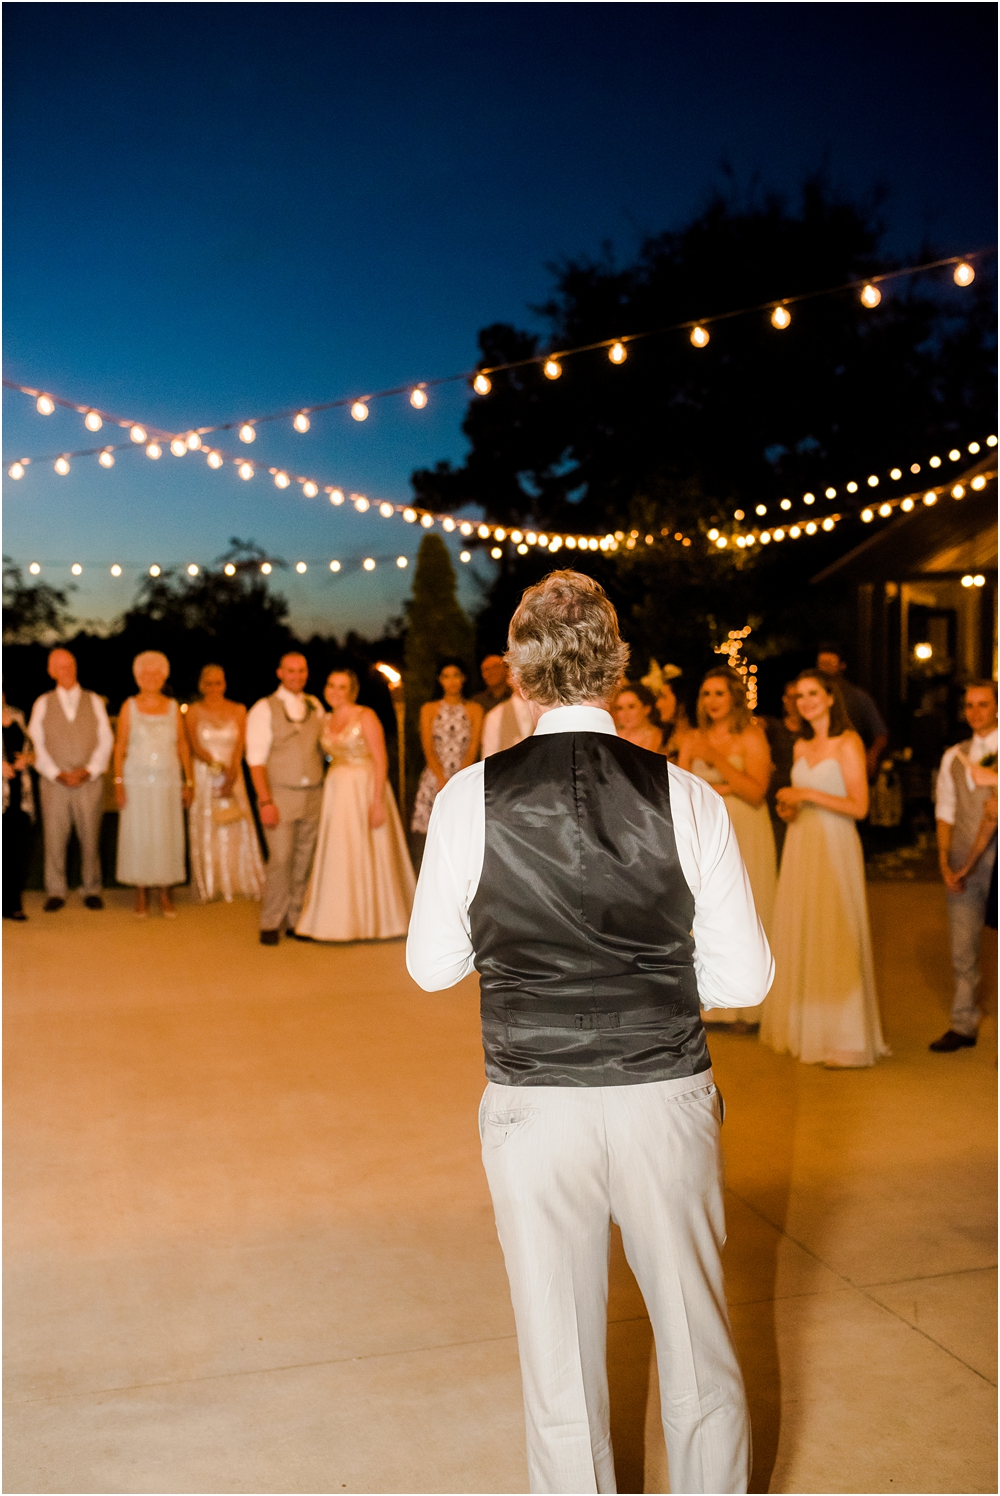 matthew-wedding-kiersten-stevenson-photography-30a-panama-city-beach-dothan-tallahassee-(464-of-579).JPG